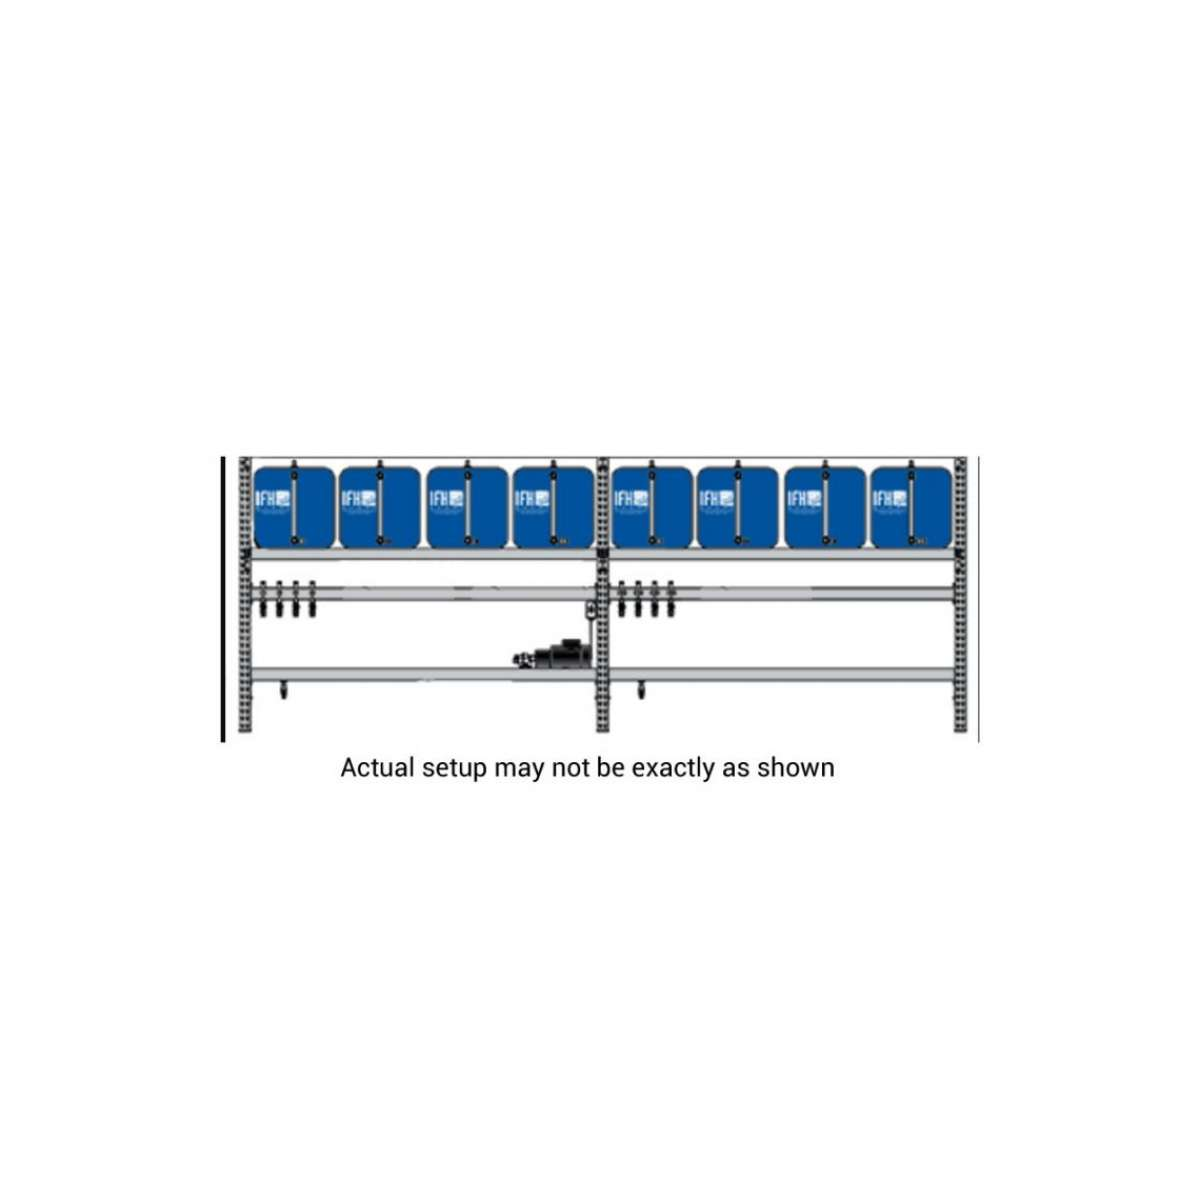 8 container system (1X8) with Dual Filter Assemblies and  3-way Diverter Systems